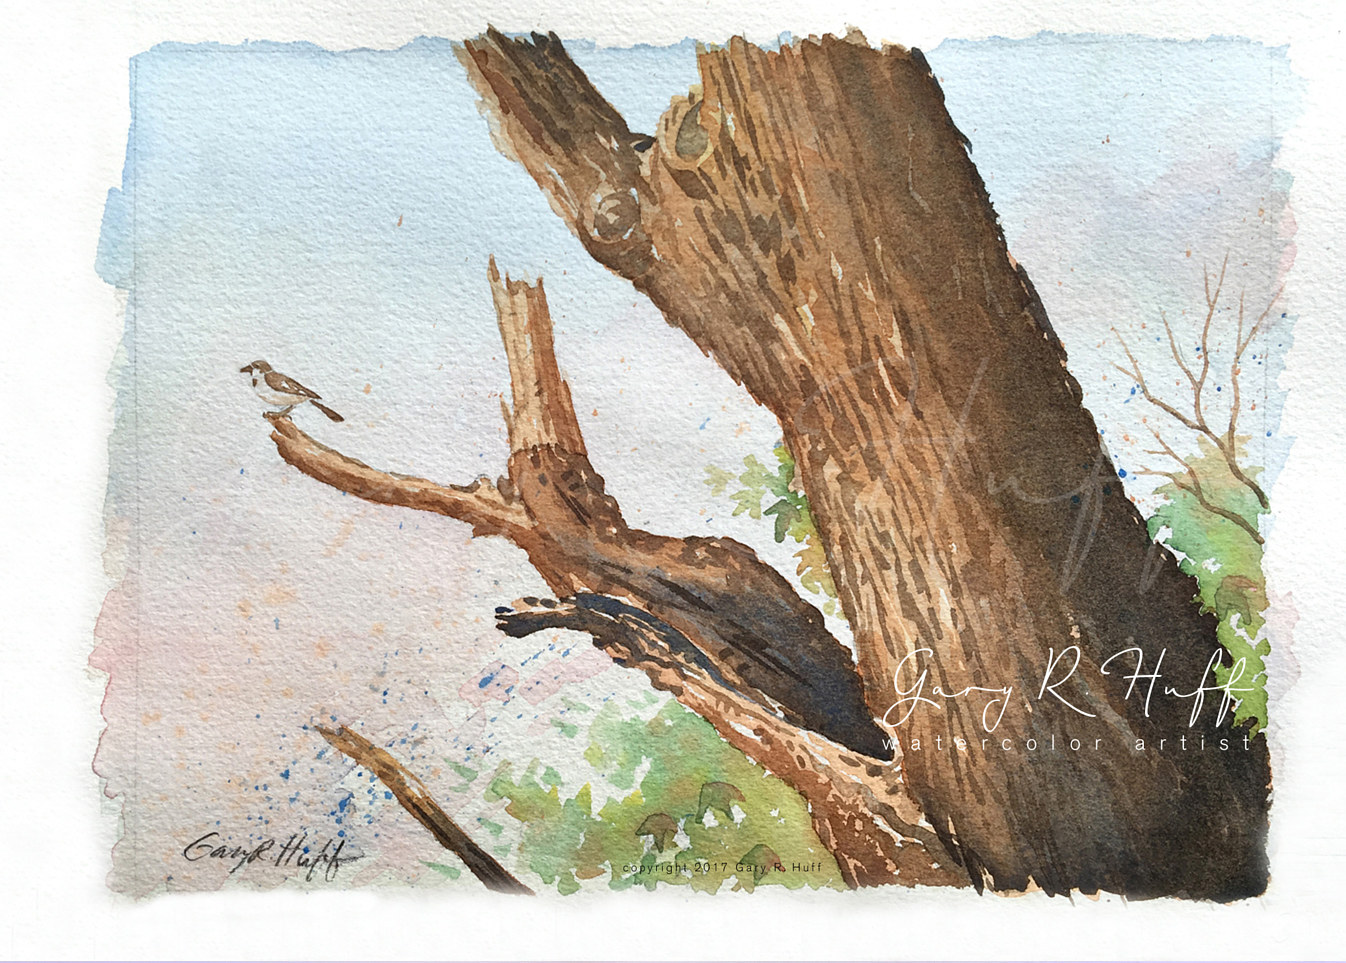 Painting Bird On Limb by Gary Huff